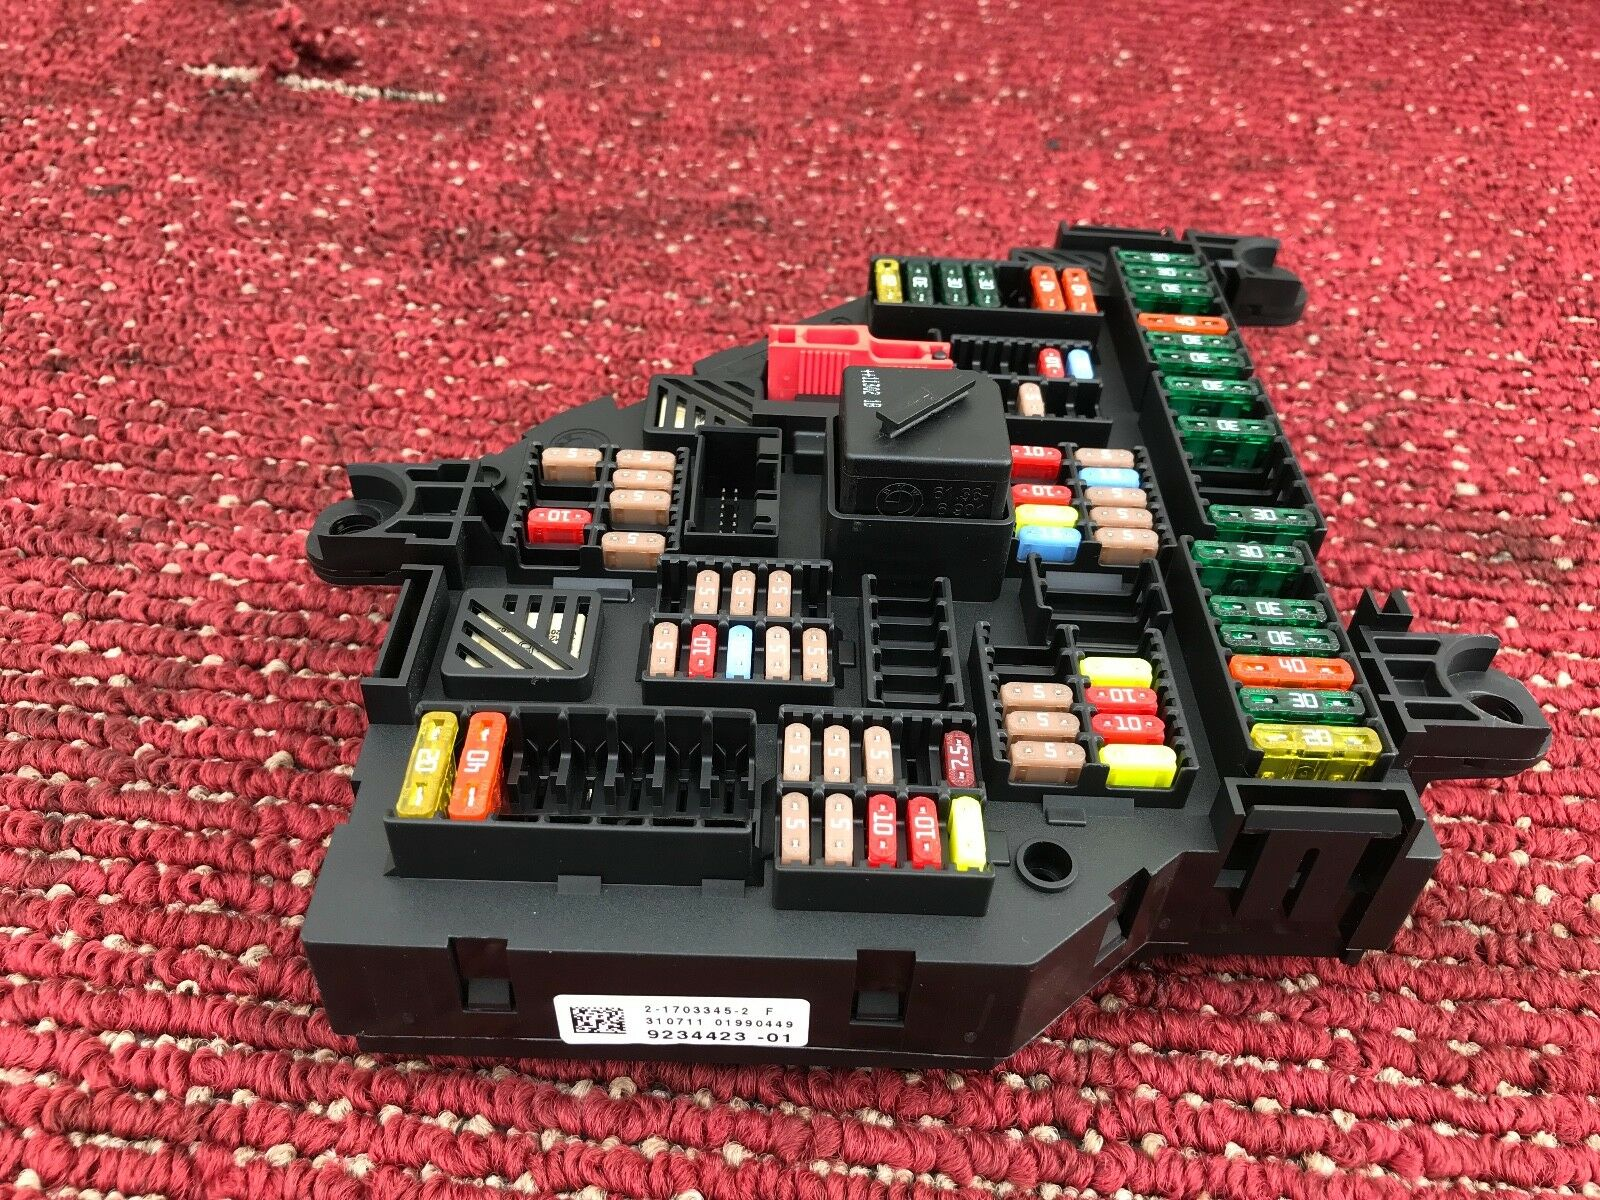 31k Bmw F12 F13 650i 640i M6 Trunk Power Distribution Fusebox Fuse Box 1 Of 5only Available